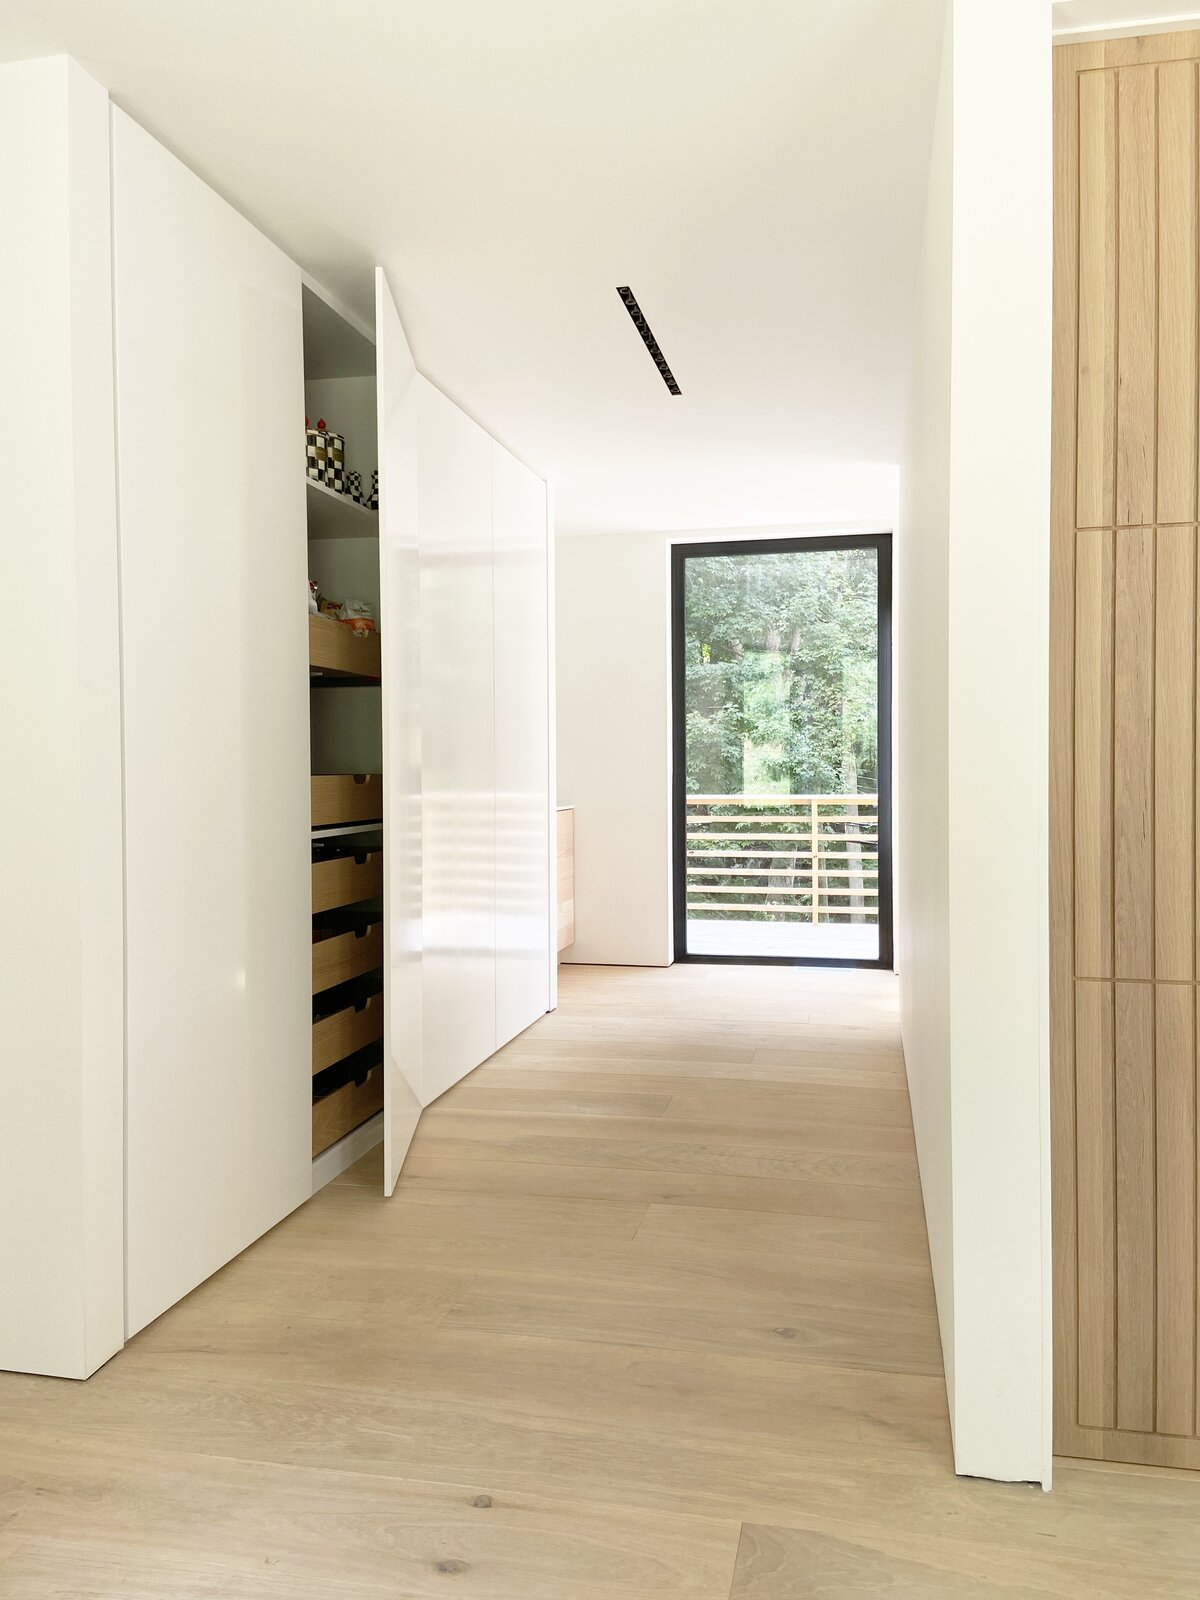 Storage Room, Cabinet Storage Type, and Closet Storage Type Built-in pantry hidden in a corridor  Cork Haven by Multitude Studio